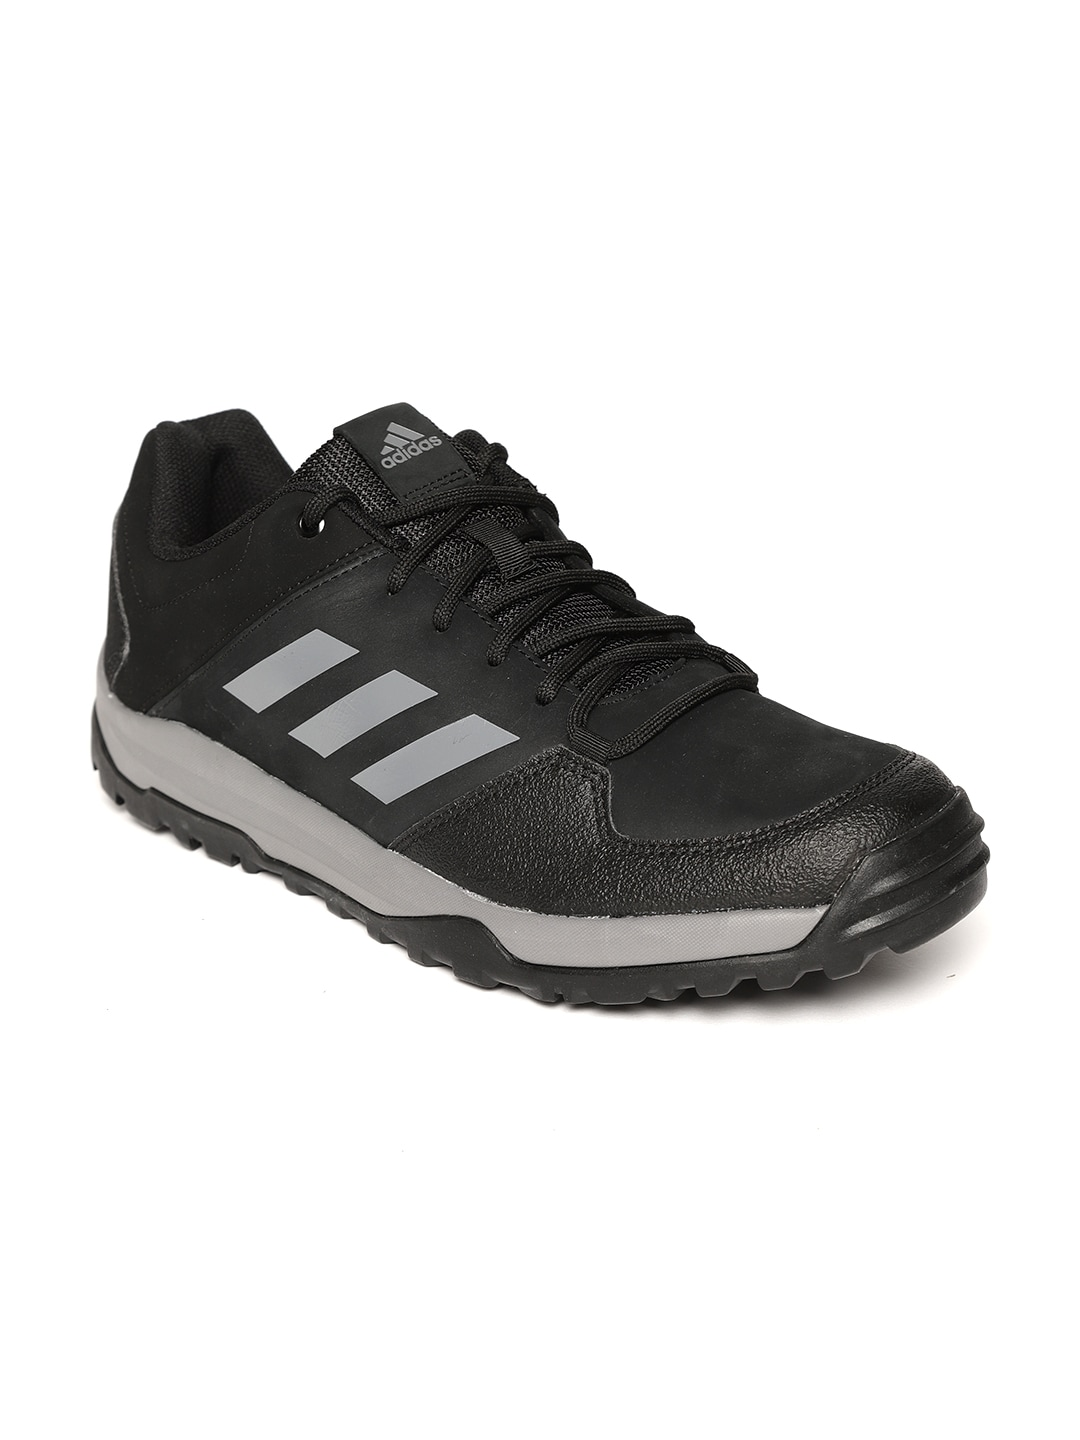 a8285a6aaf7 Adidas Shoes - Buy Adidas Shoes for Men   Women Online - Myntra